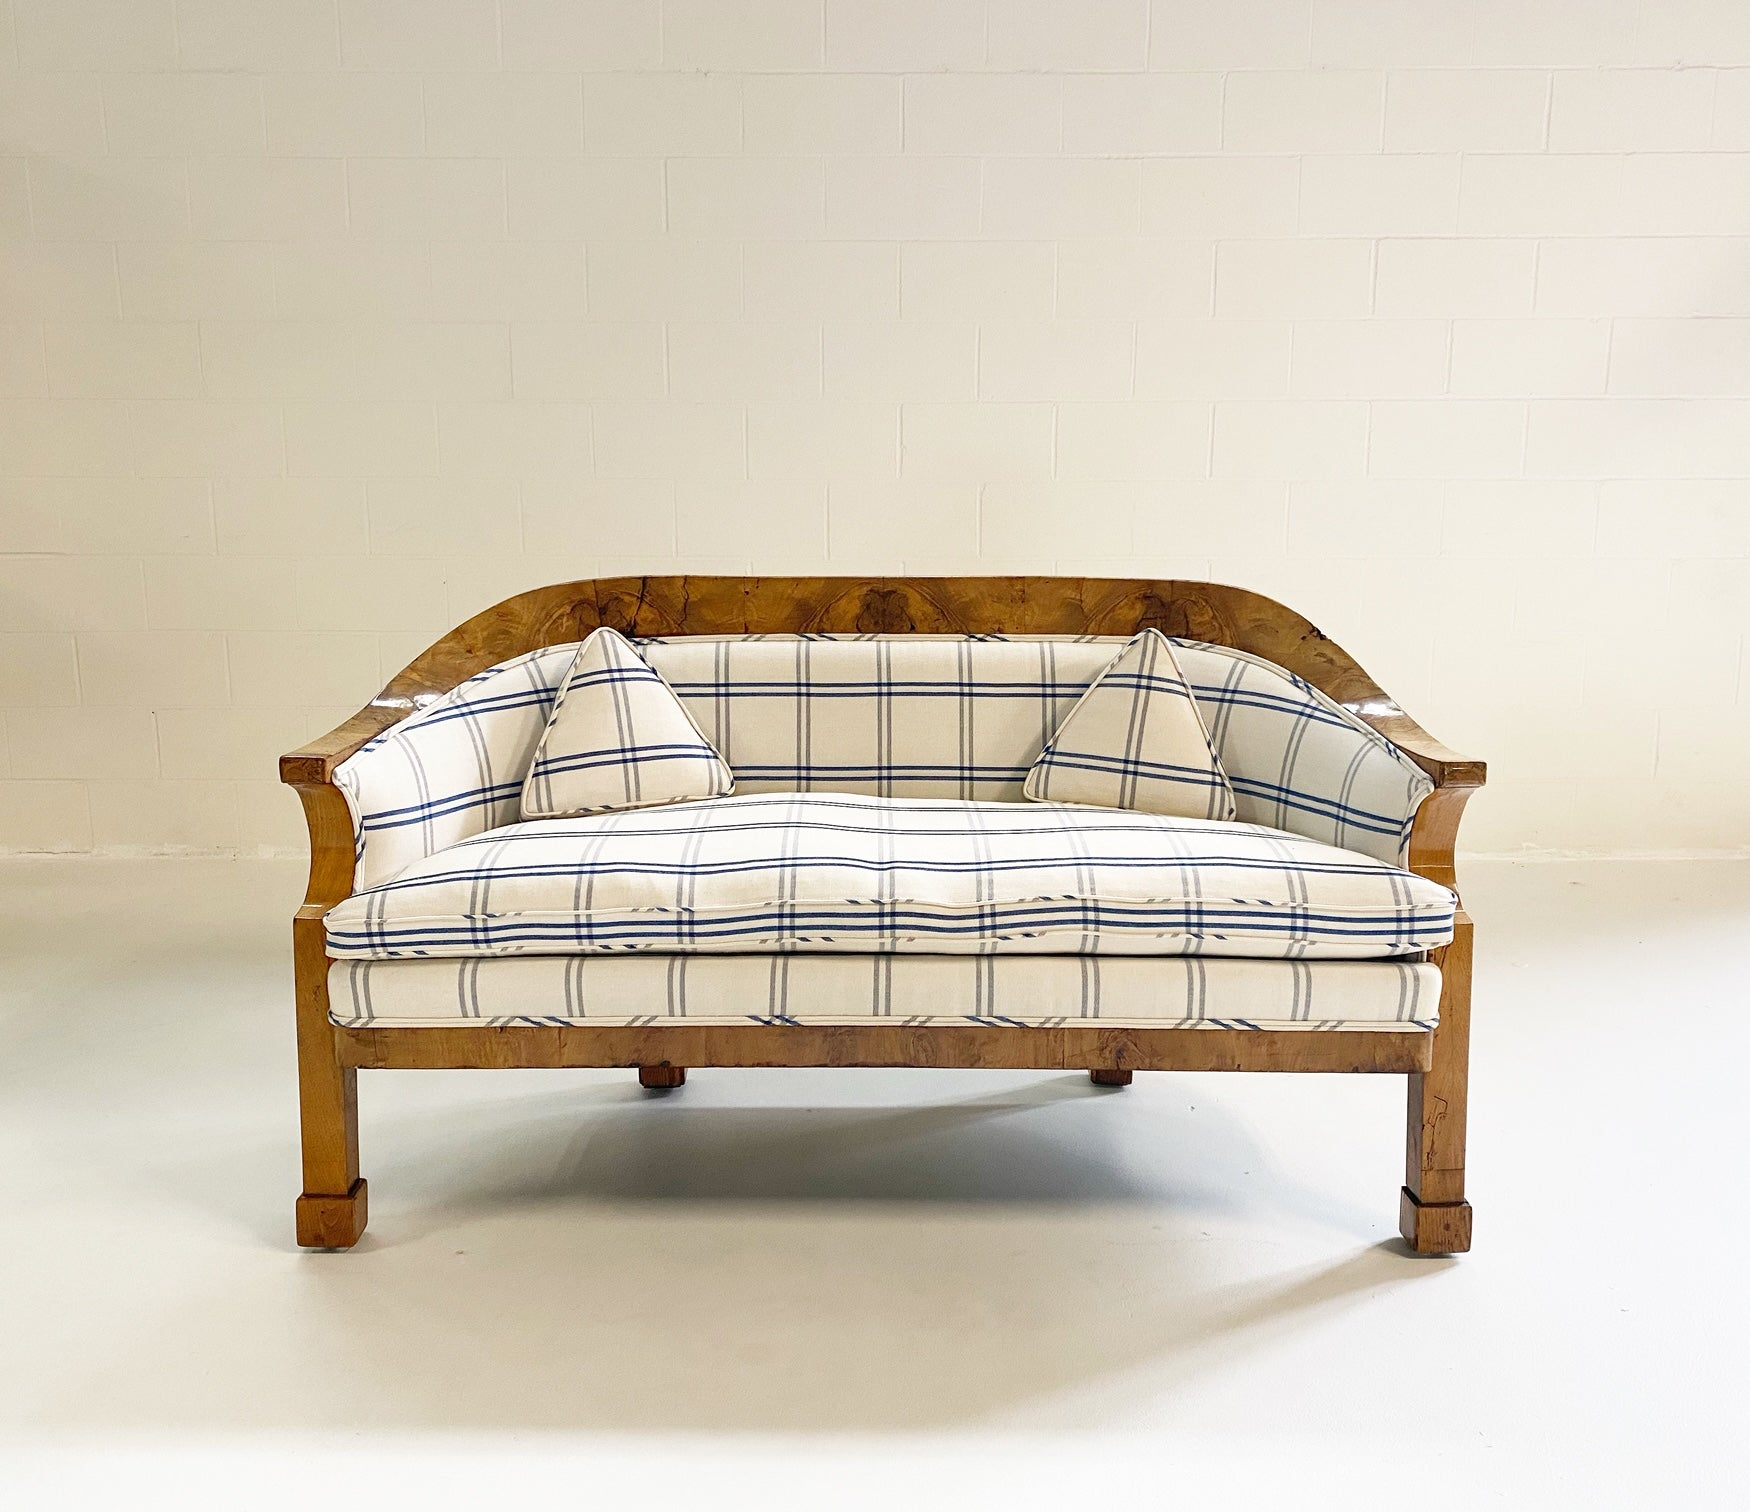 Biedermeier Loveseat in Schumacher Indigo Plaid - FORSYTH